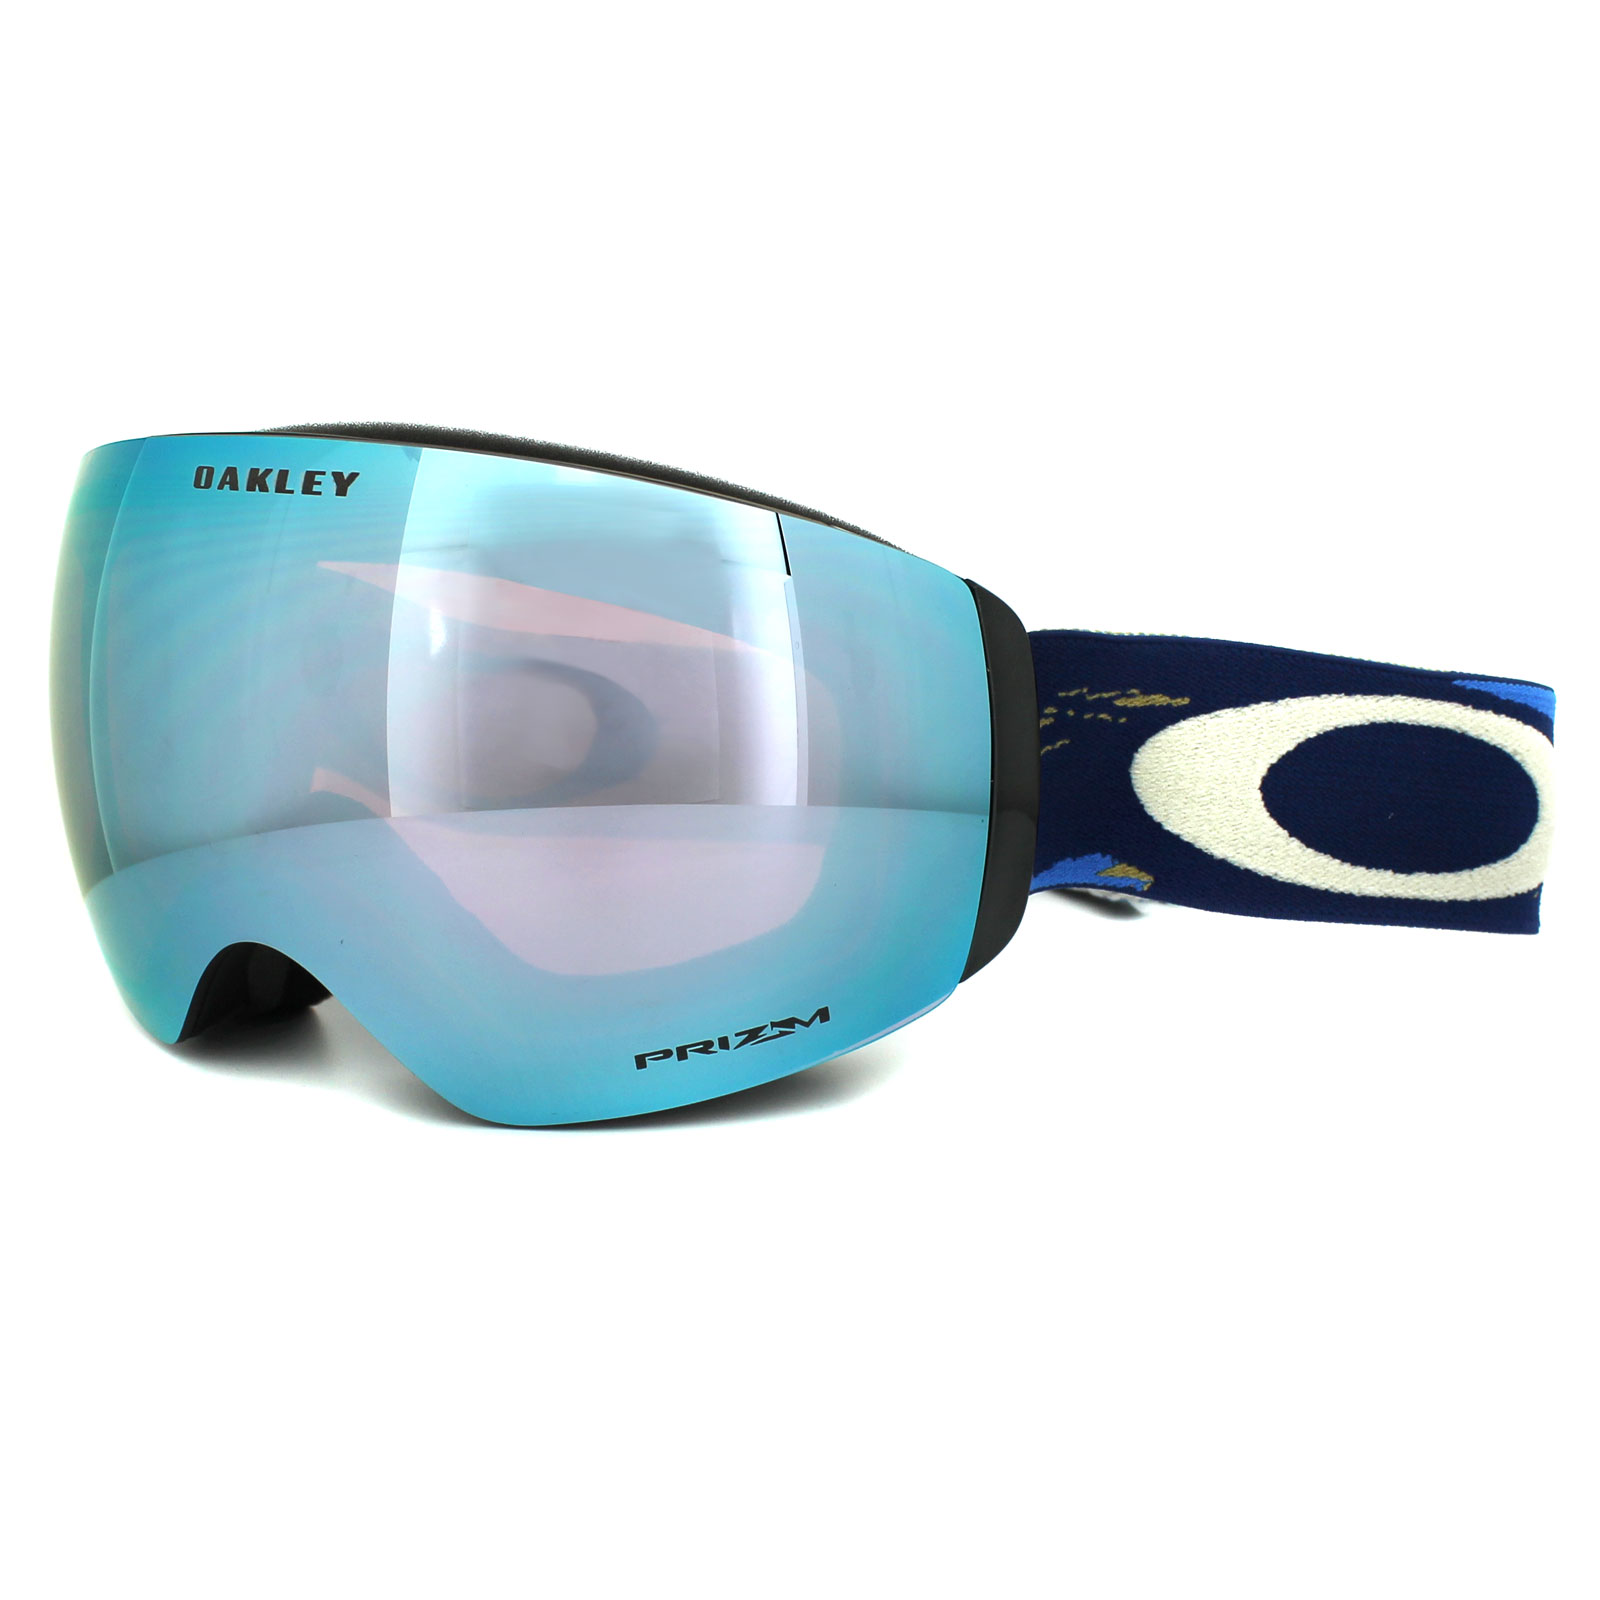 flight deck ski goggles  Cheap Oakley Flight Deck XM Ski Goggles - Discounted Sunglasses